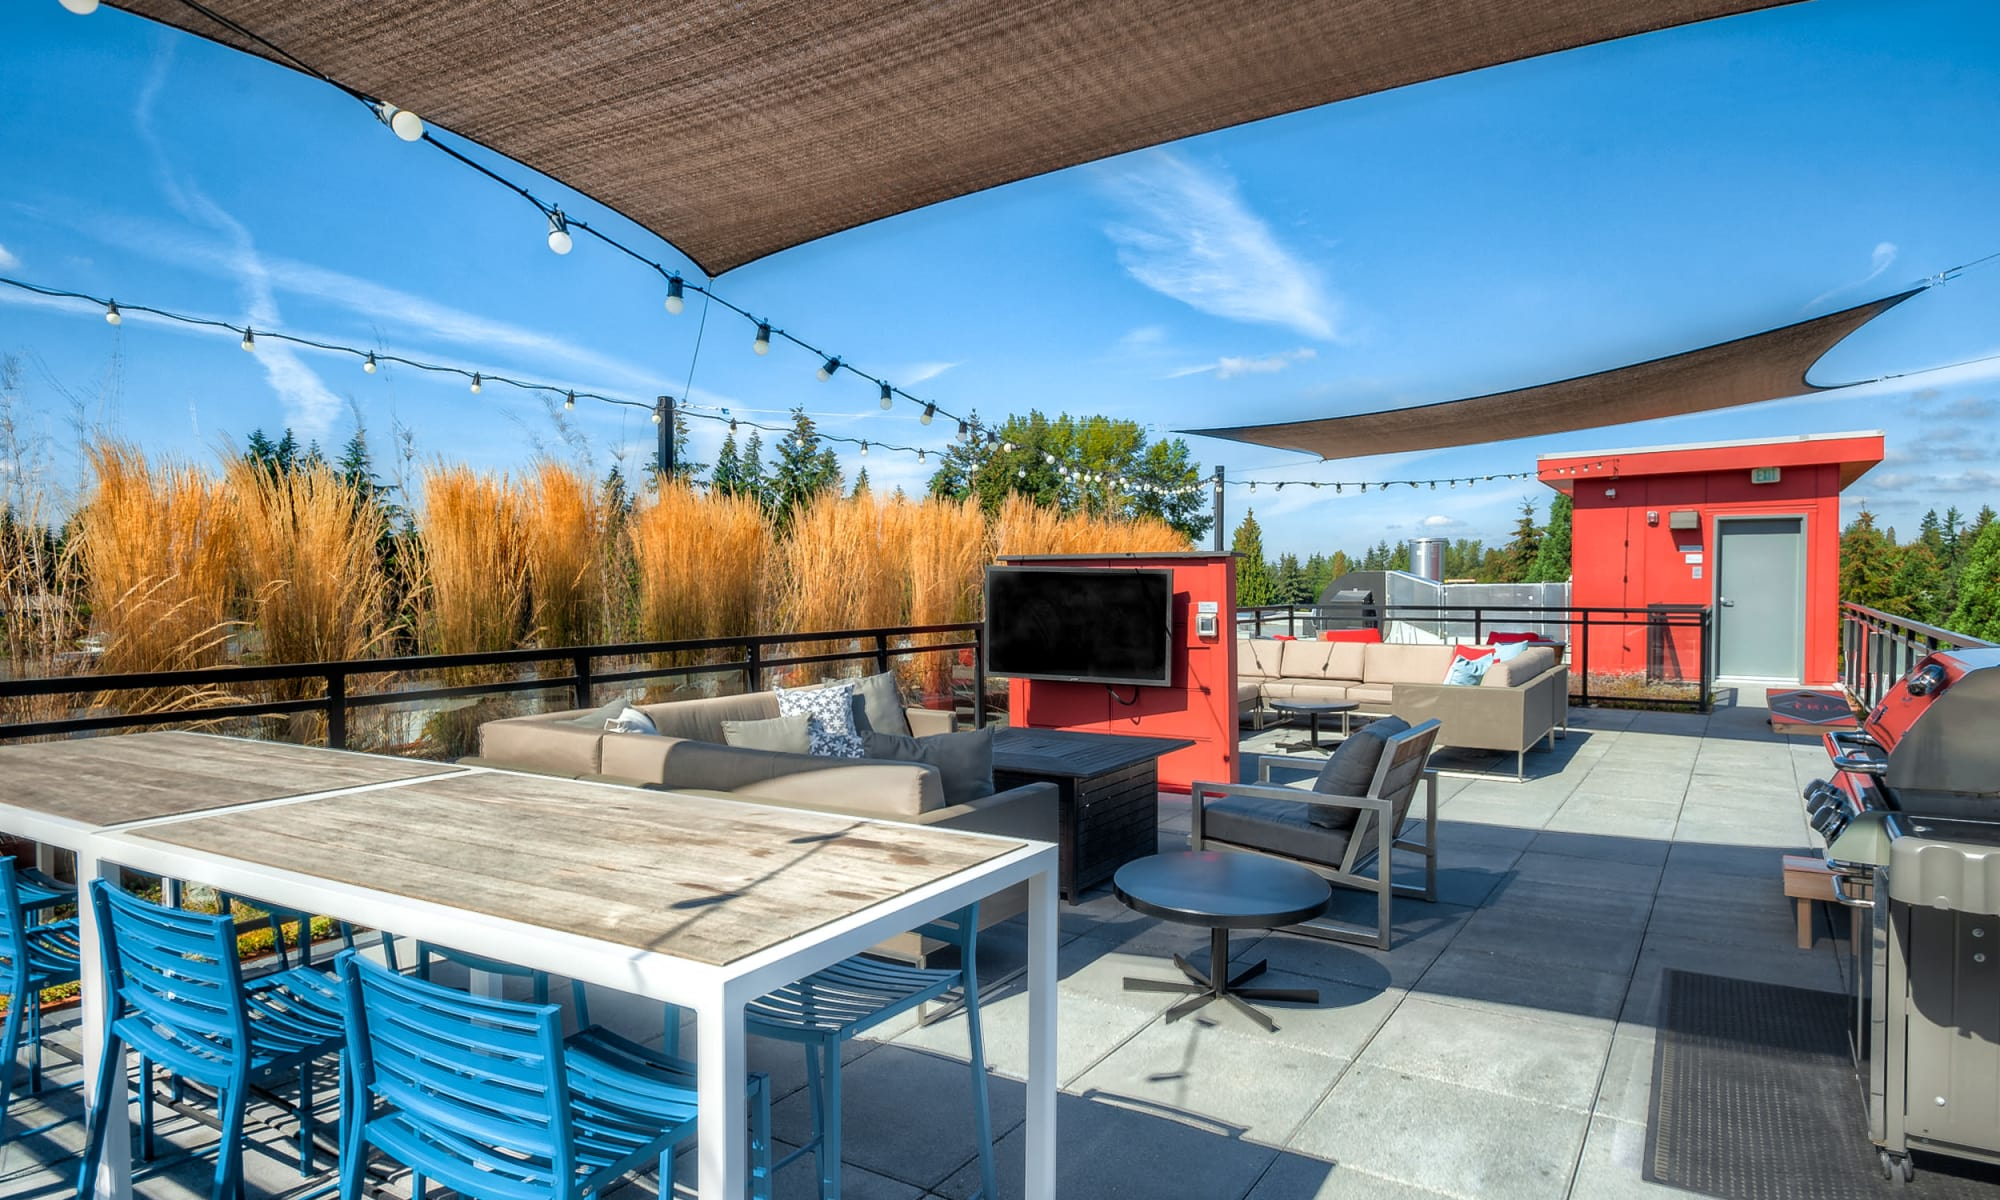 Rooftop deck and lounge area with TVs, couches, corn hole and BBQ at Tria Apartments in Newcastle, WA